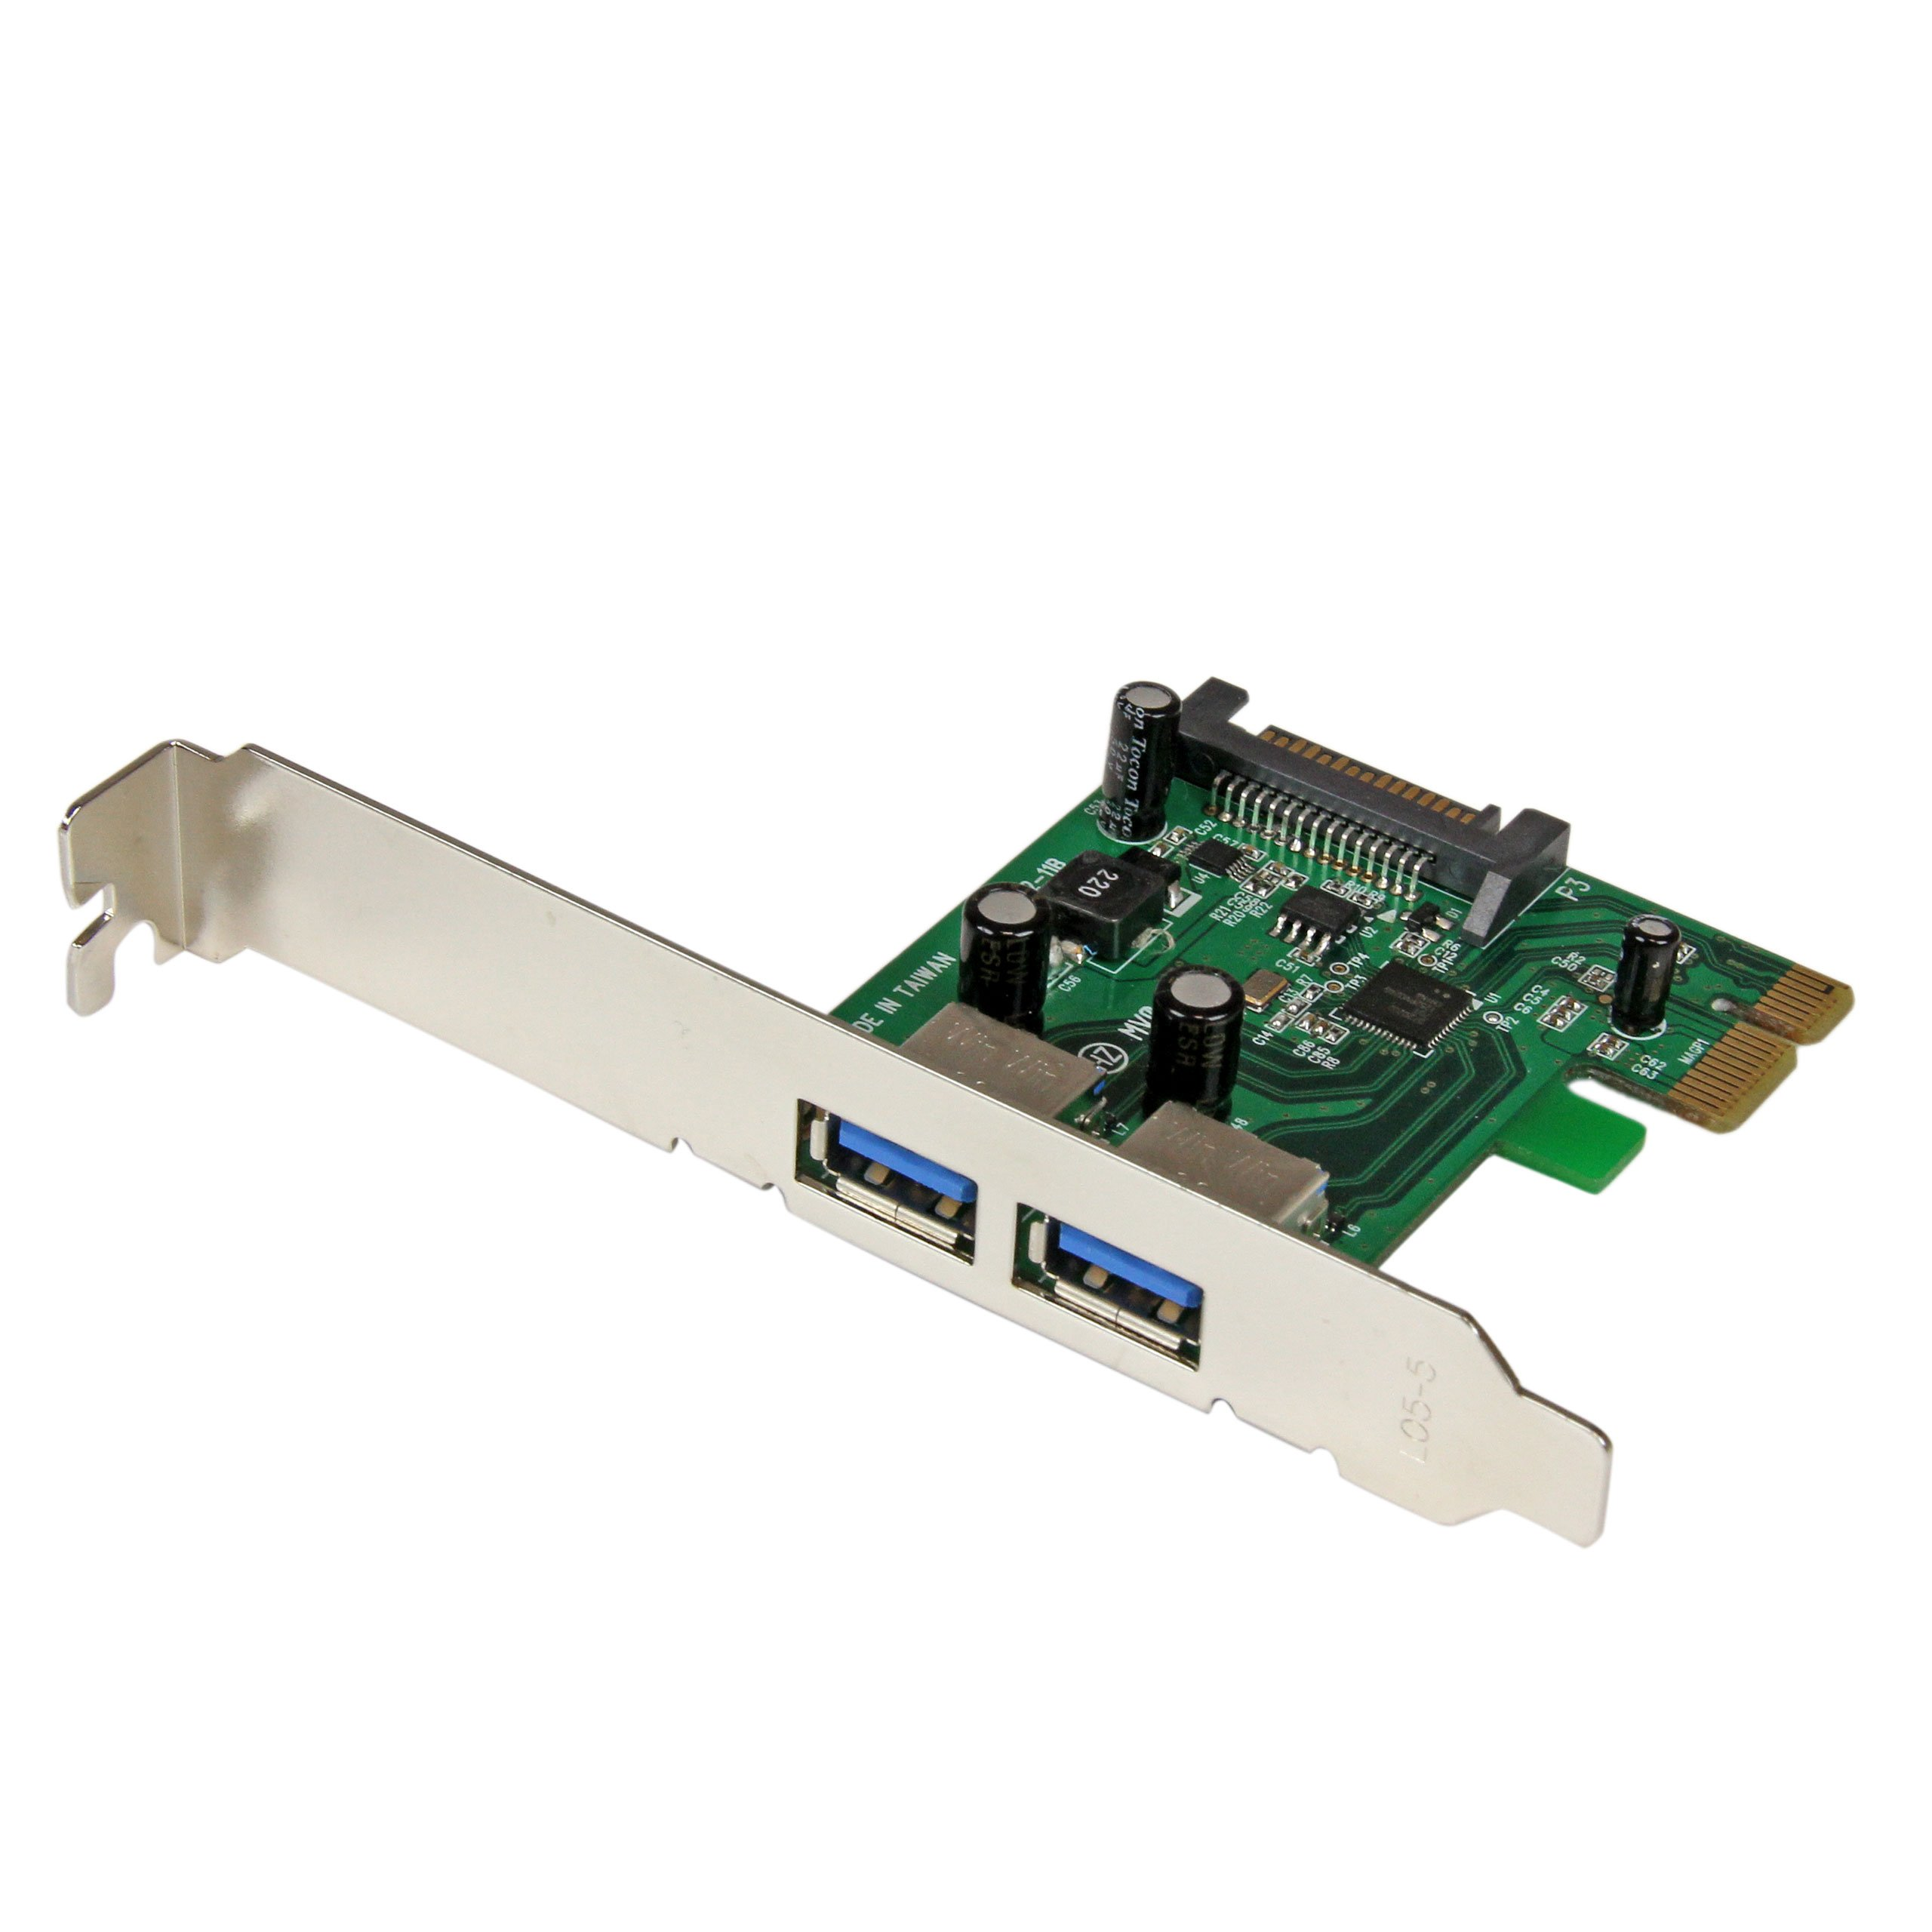 2 Port PCI Express (PCIe) SuperSpeed USB 3.0 Card Adapter with UASP - SATA Power - Dual Port USB 3 PCIe Controller by StarTech